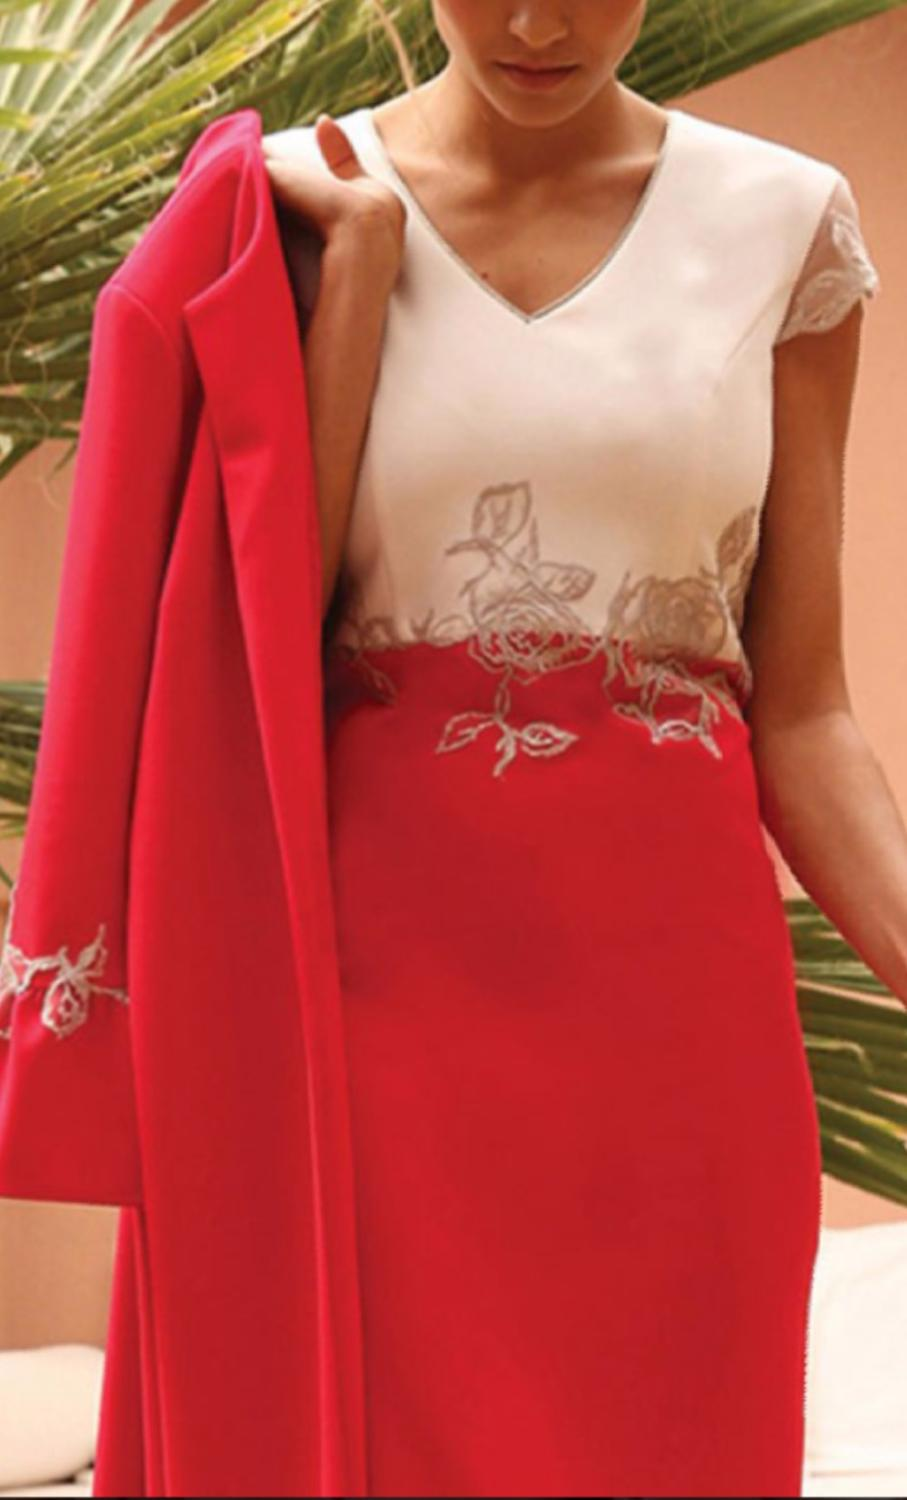 Two Pieces Mother Of The Bride Dresses Suits Red Outfits Flare Women Formal Wedding Guest Dresses Evening Gowns New